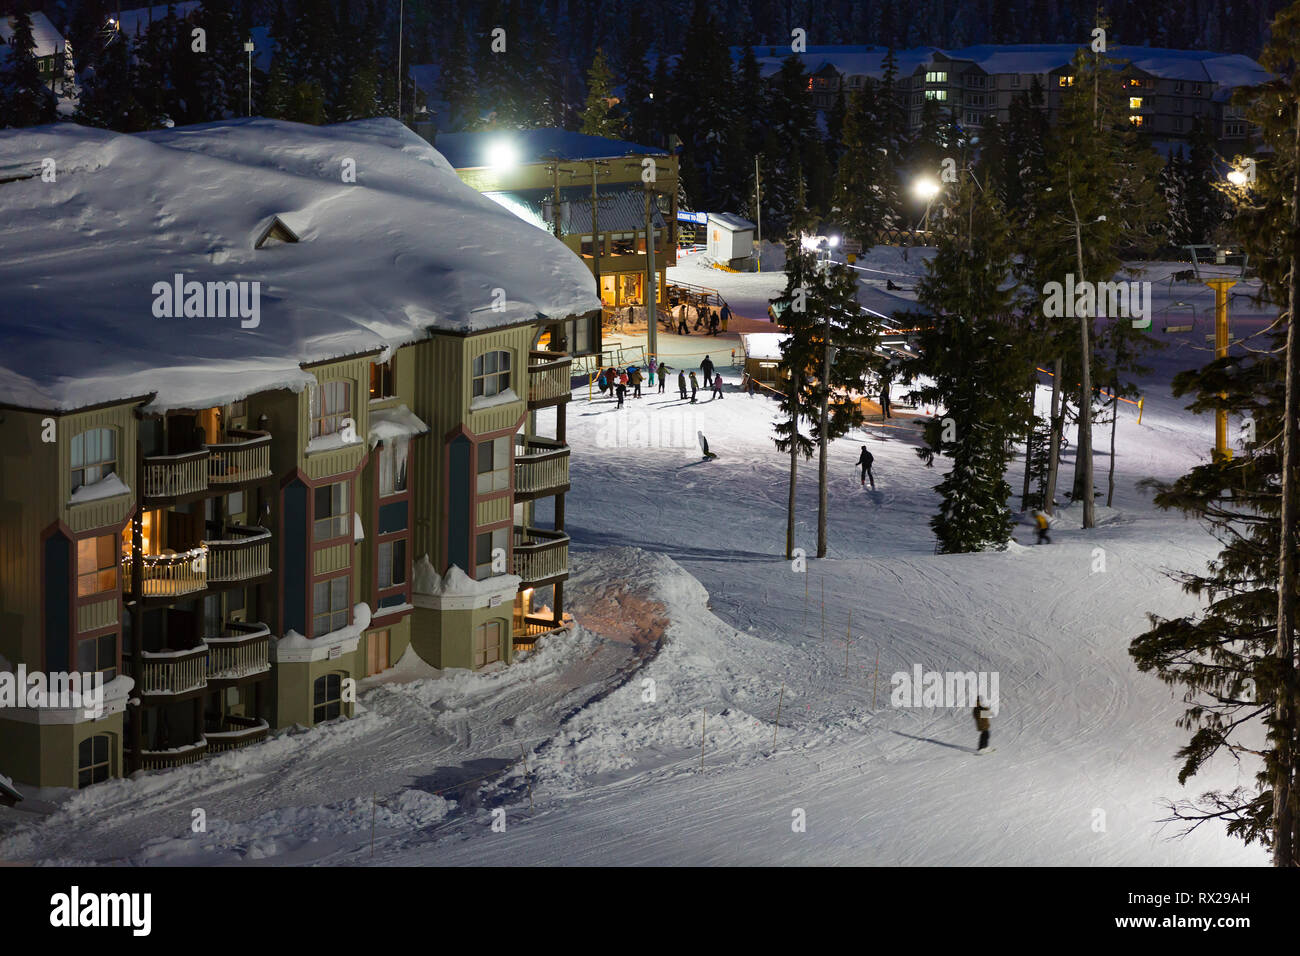 Slopeside accommodation at Bear and Deer Lodge allow for quick access to ski runs on Mt. washington, The Comox Valley, Vancouver Island, British Colum - Stock Image